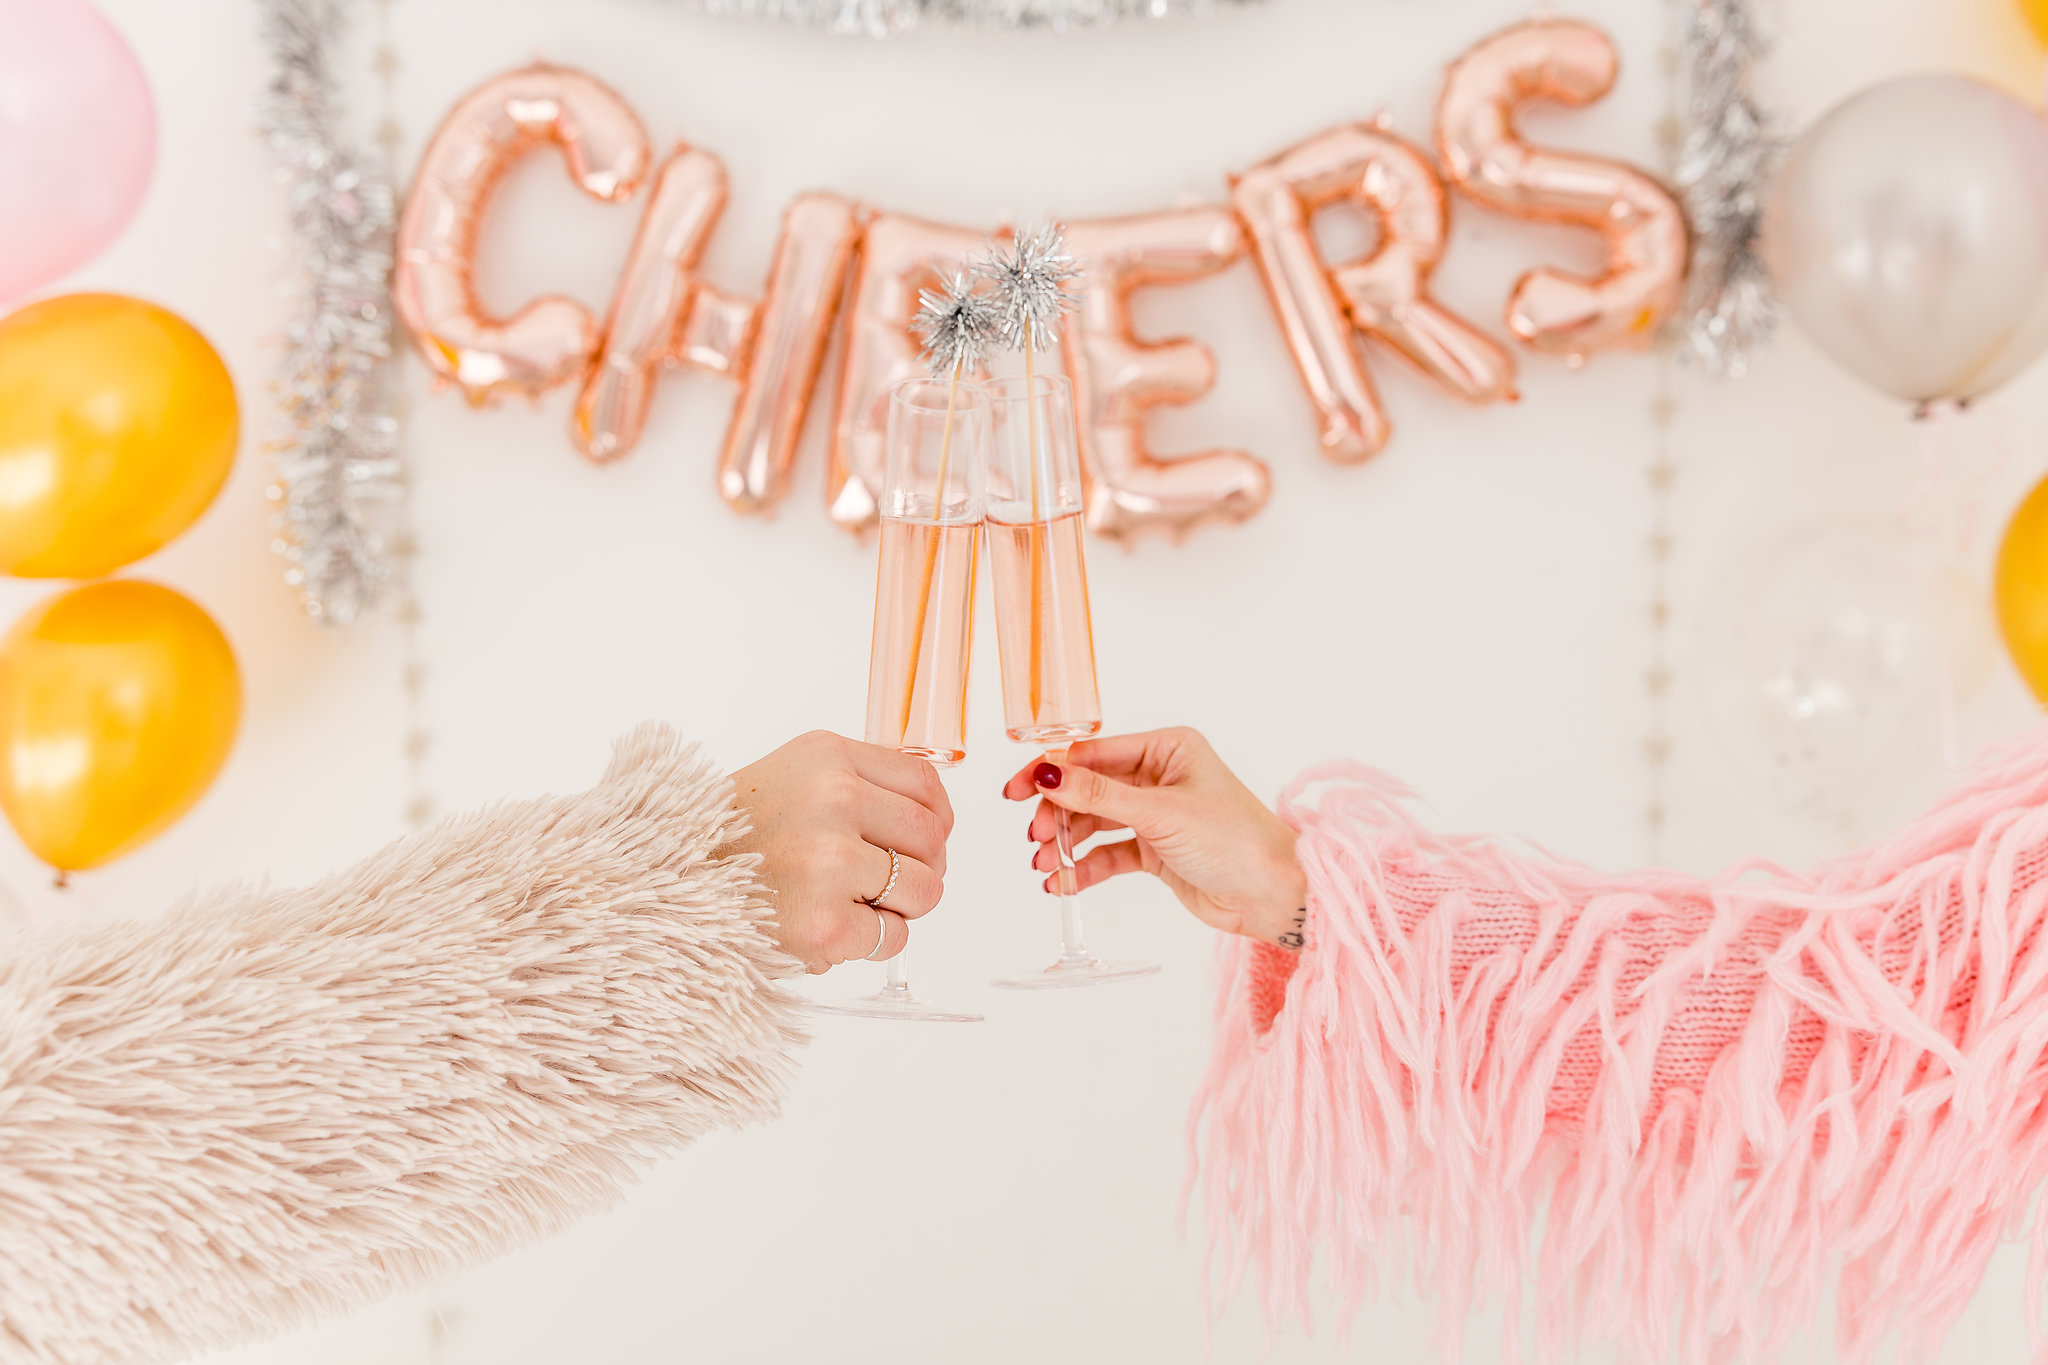 NEW YEAR'S EVE 2017 SHOOT - Dallas styled shoot at The Lumen Room, December 2017 // Photography: Madison Katlin